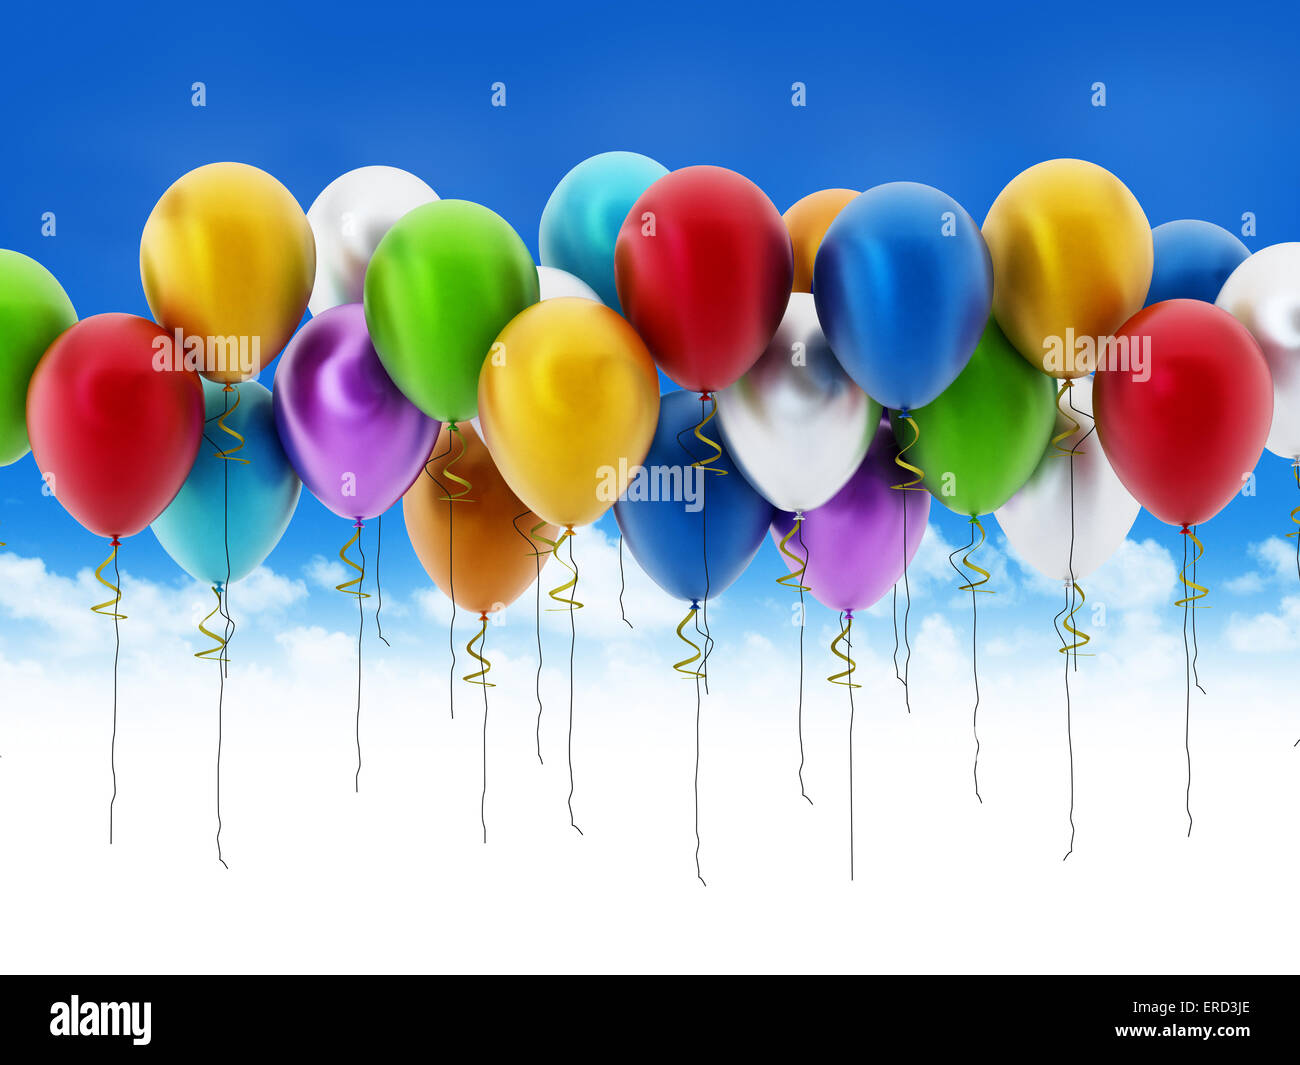 Multi colored decorative party balloons. - Stock Image